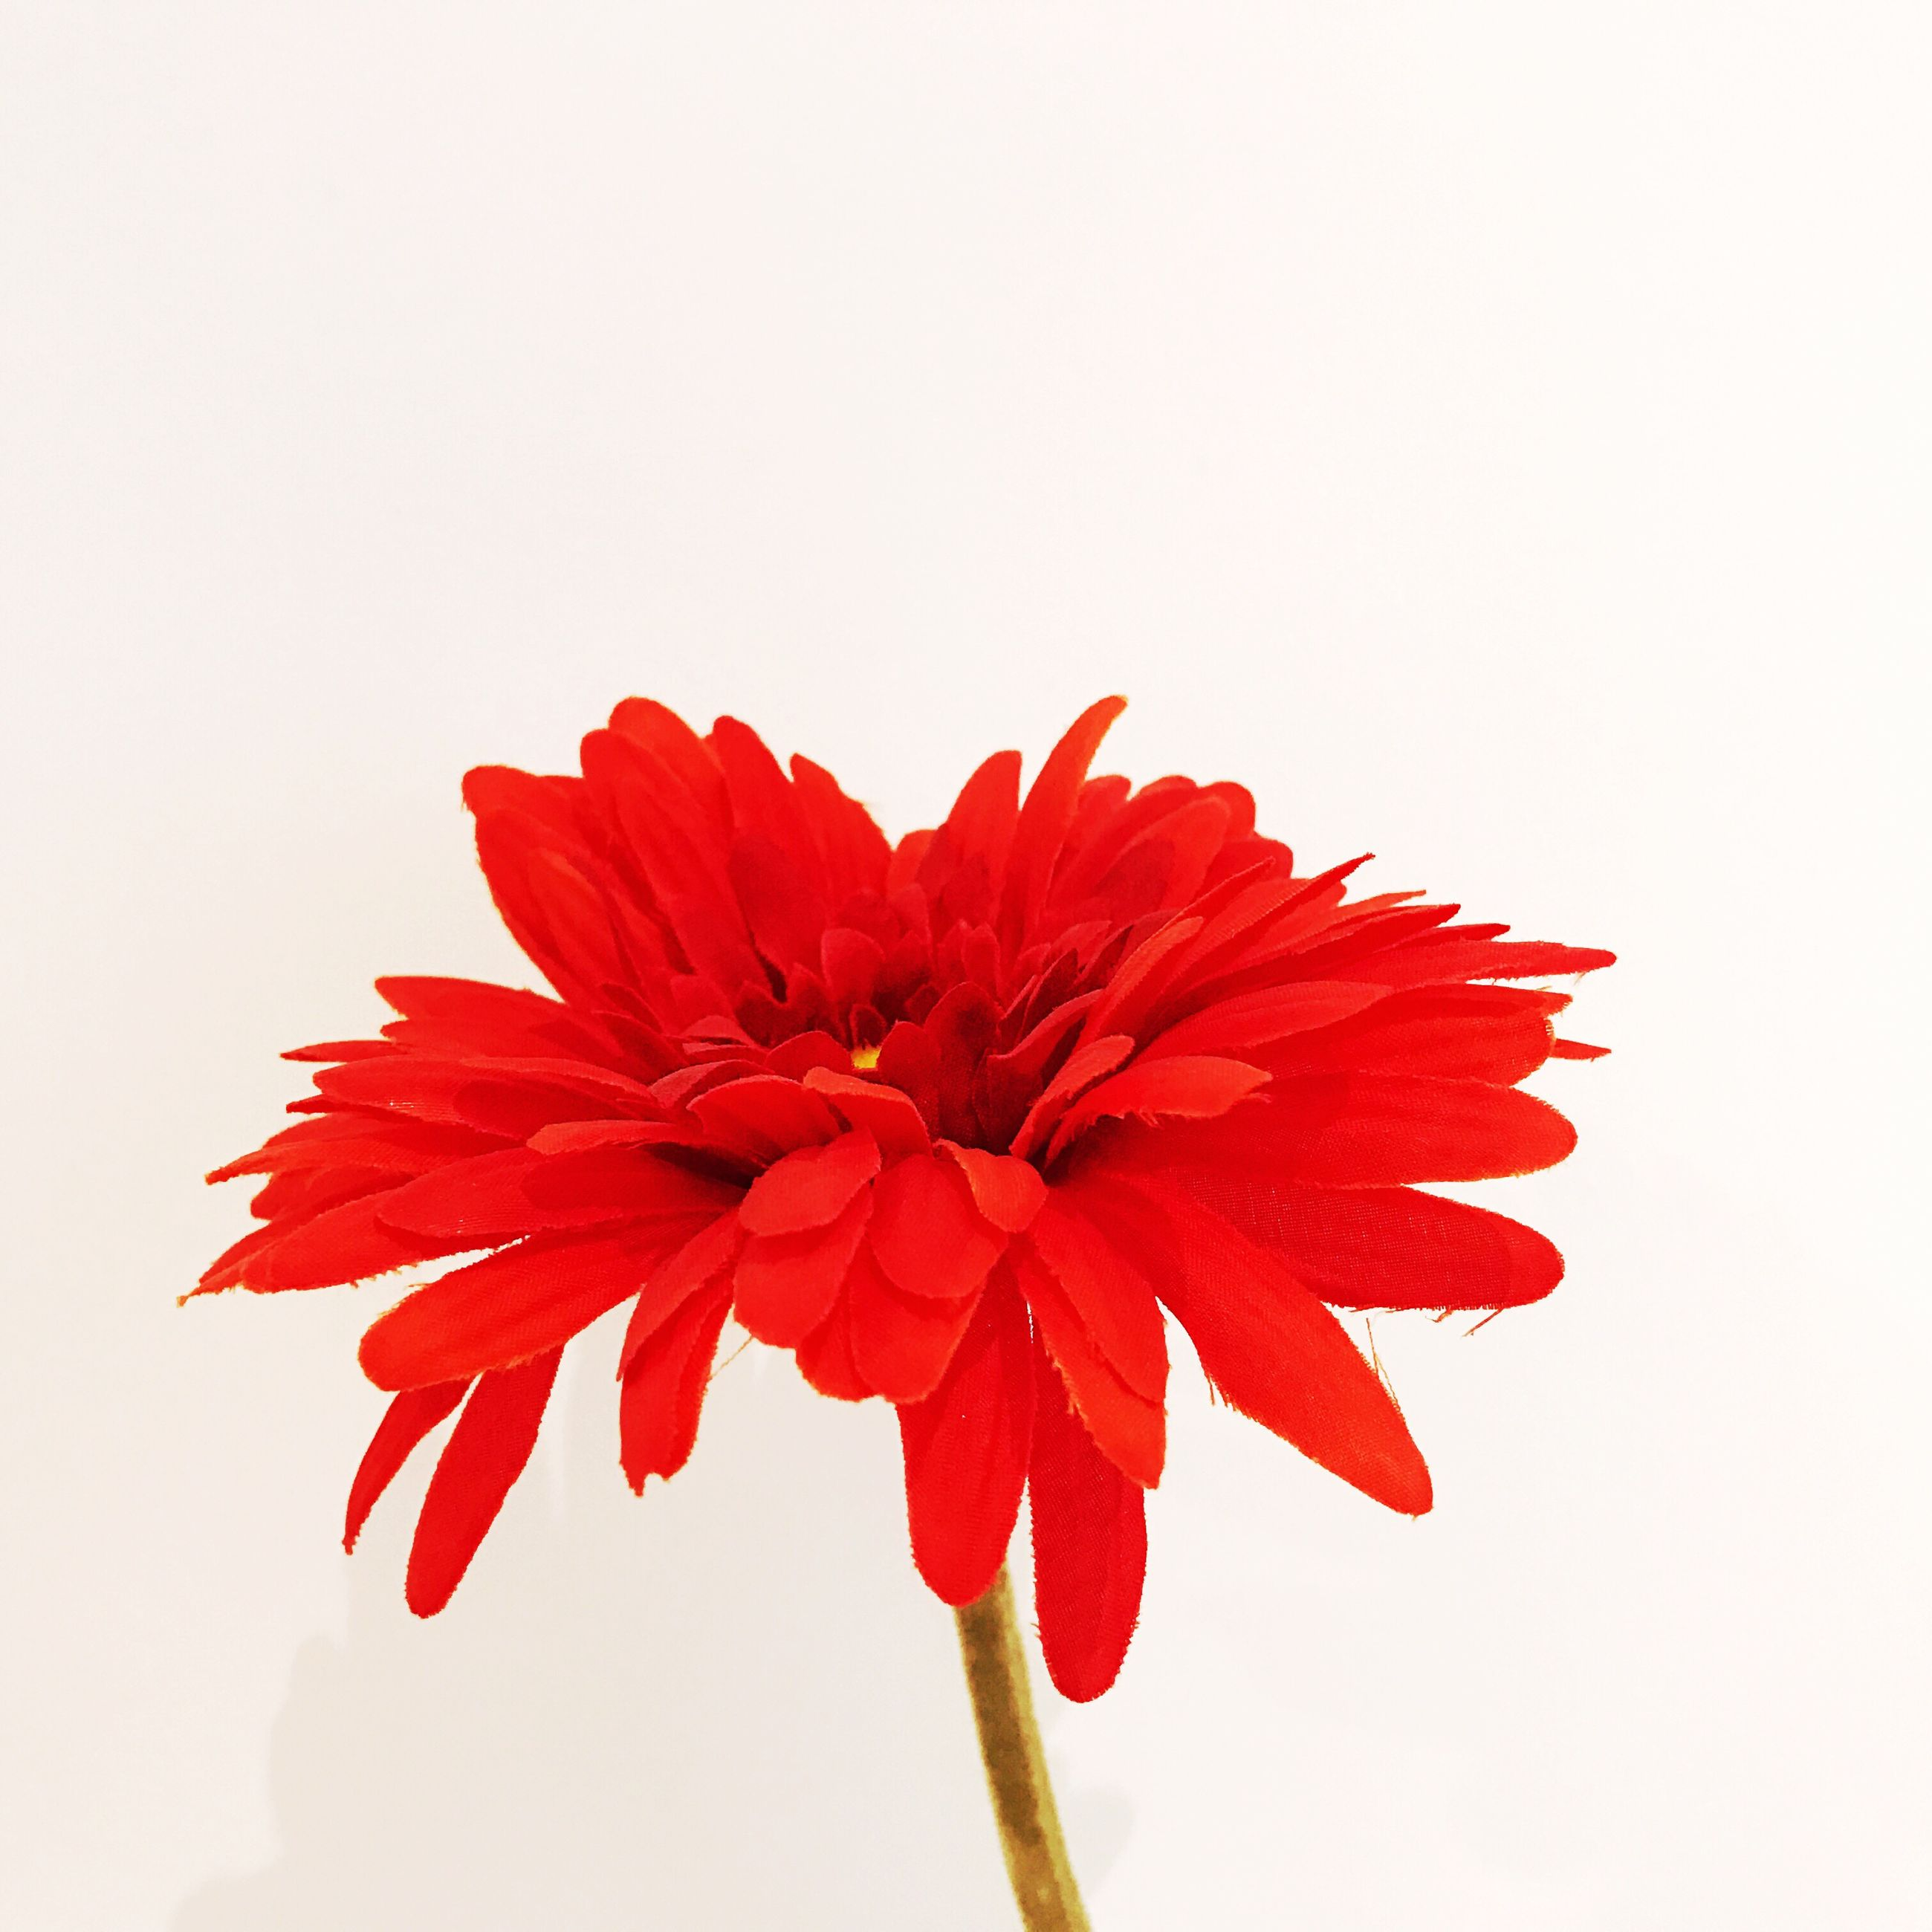 flower, white background, petal, studio shot, flower head, red, fragility, freshness, beauty in nature, copy space, nature, growth, close-up, no people, plant, blooming, hibiscus, day